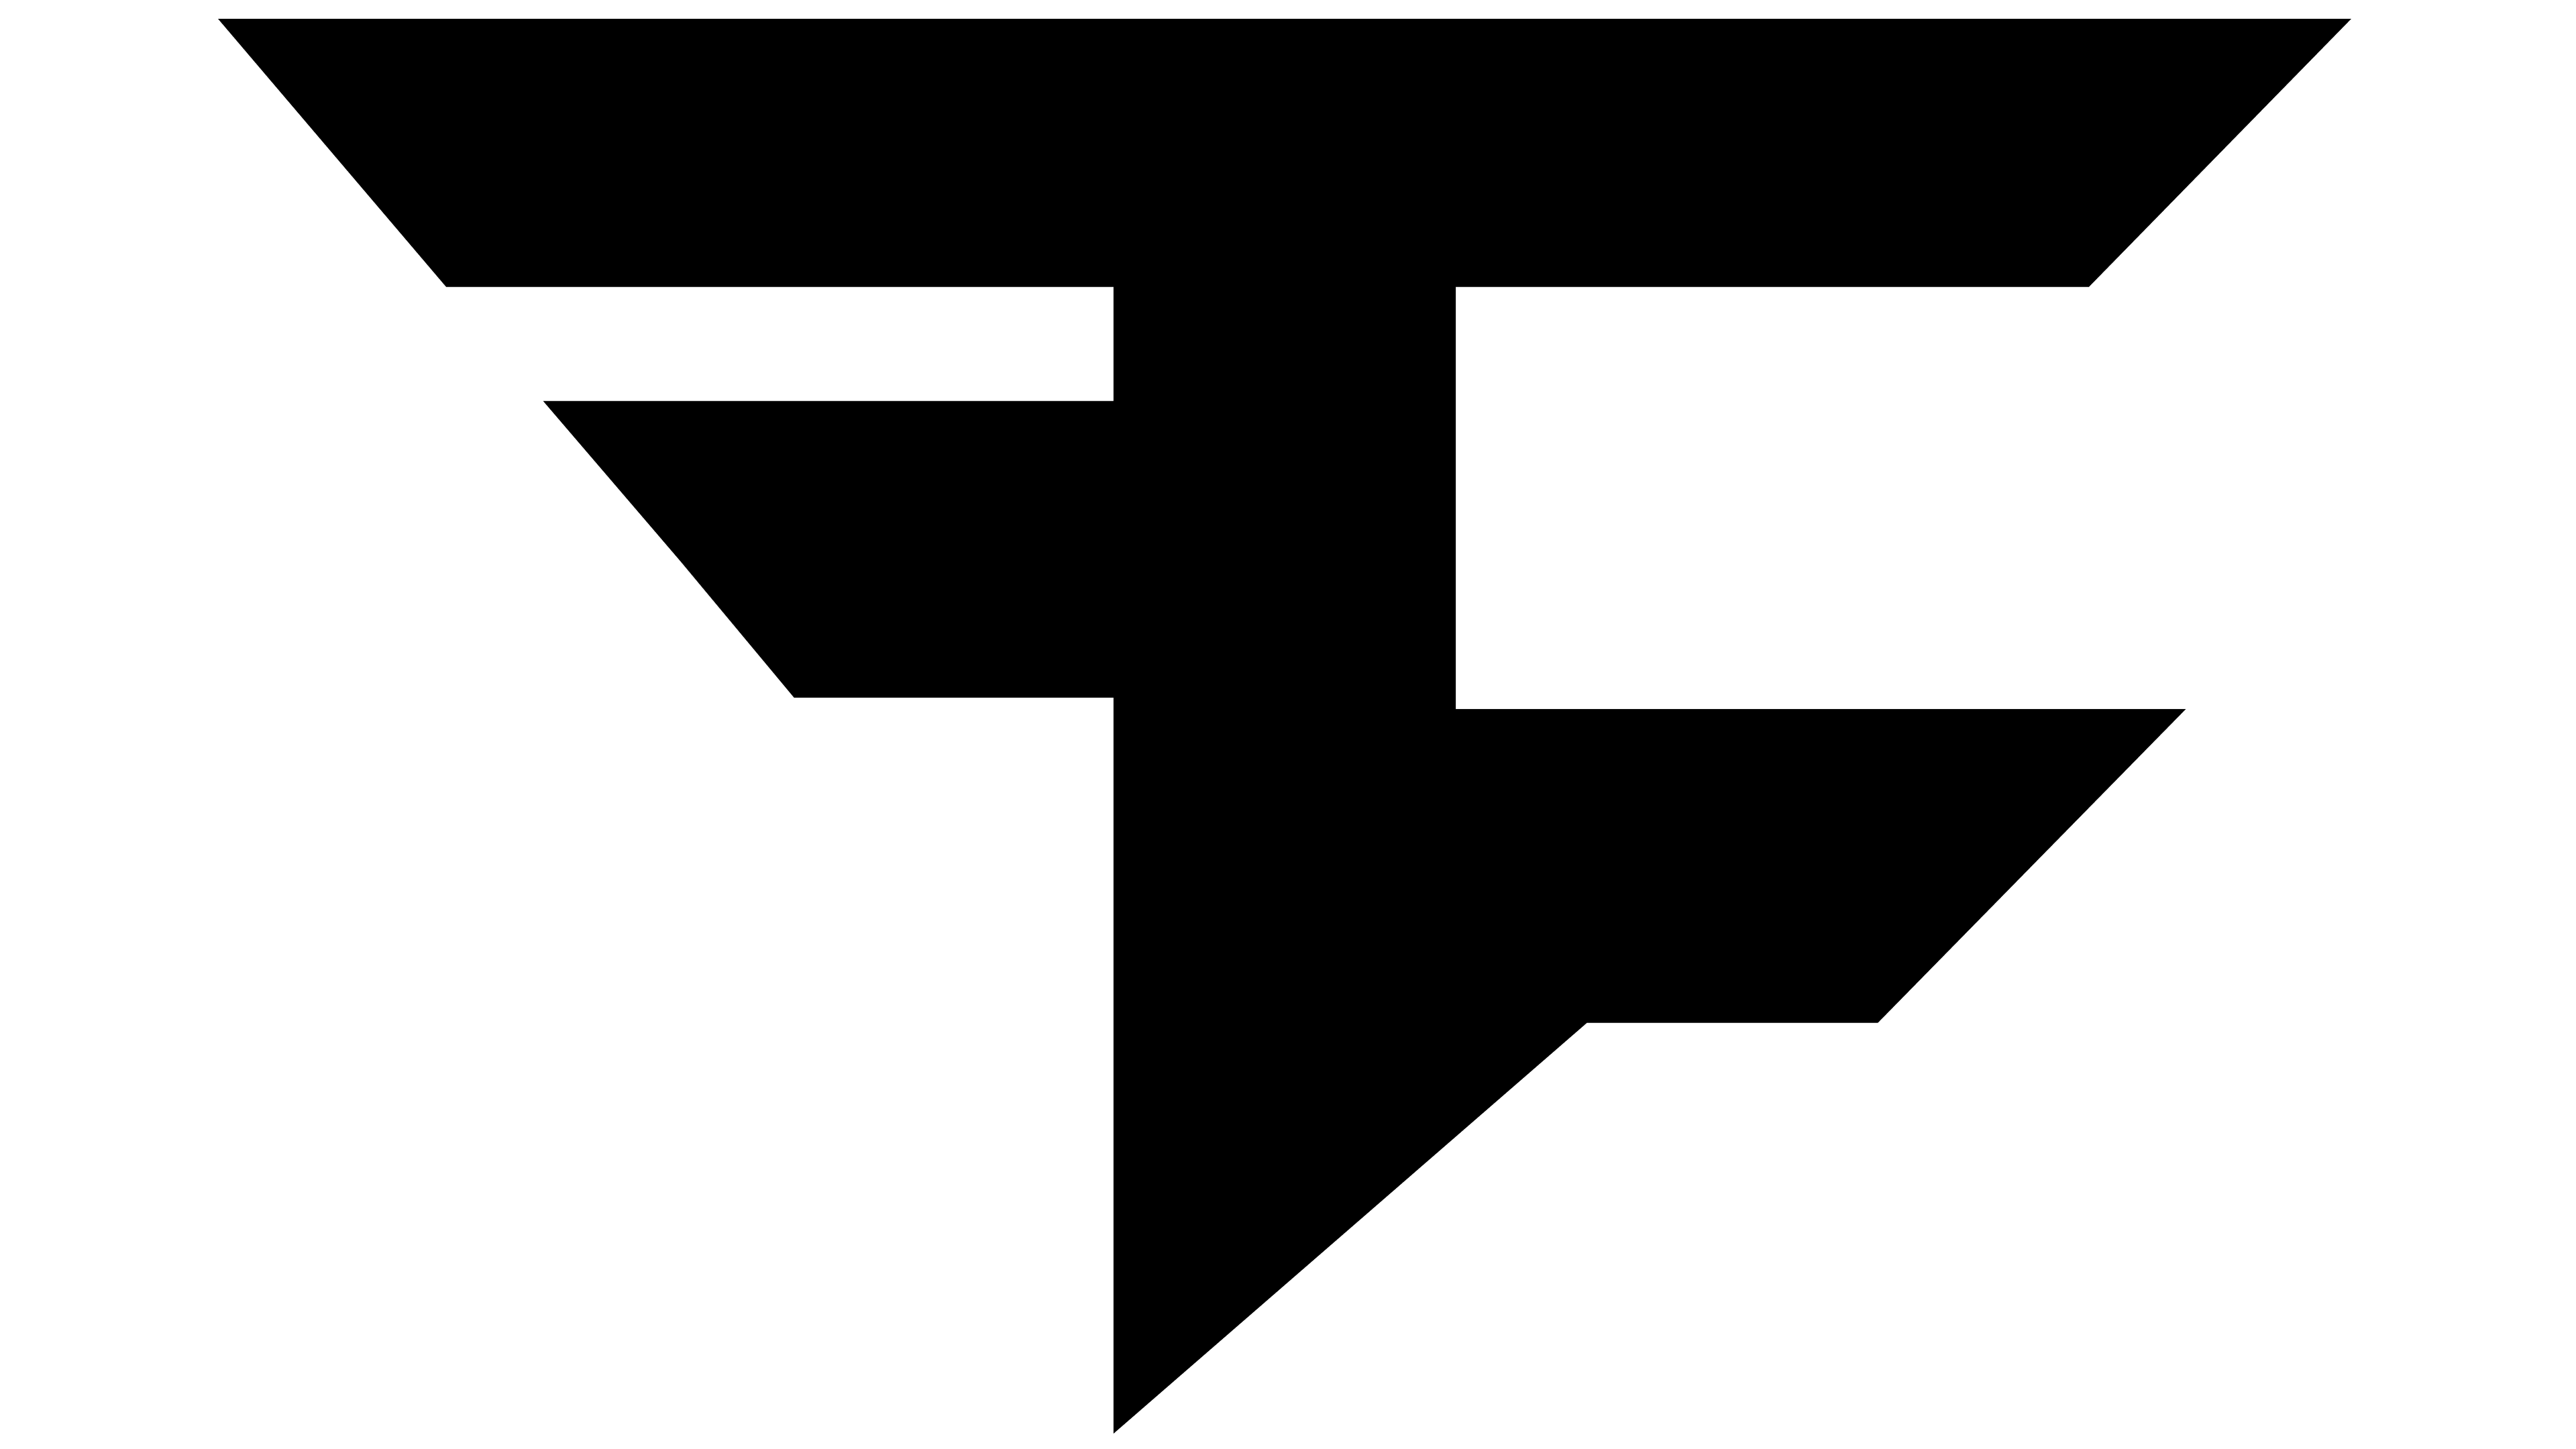 Faze Logo | The Most Famous Brands And Company Logos In The World - Faze Logo PNG